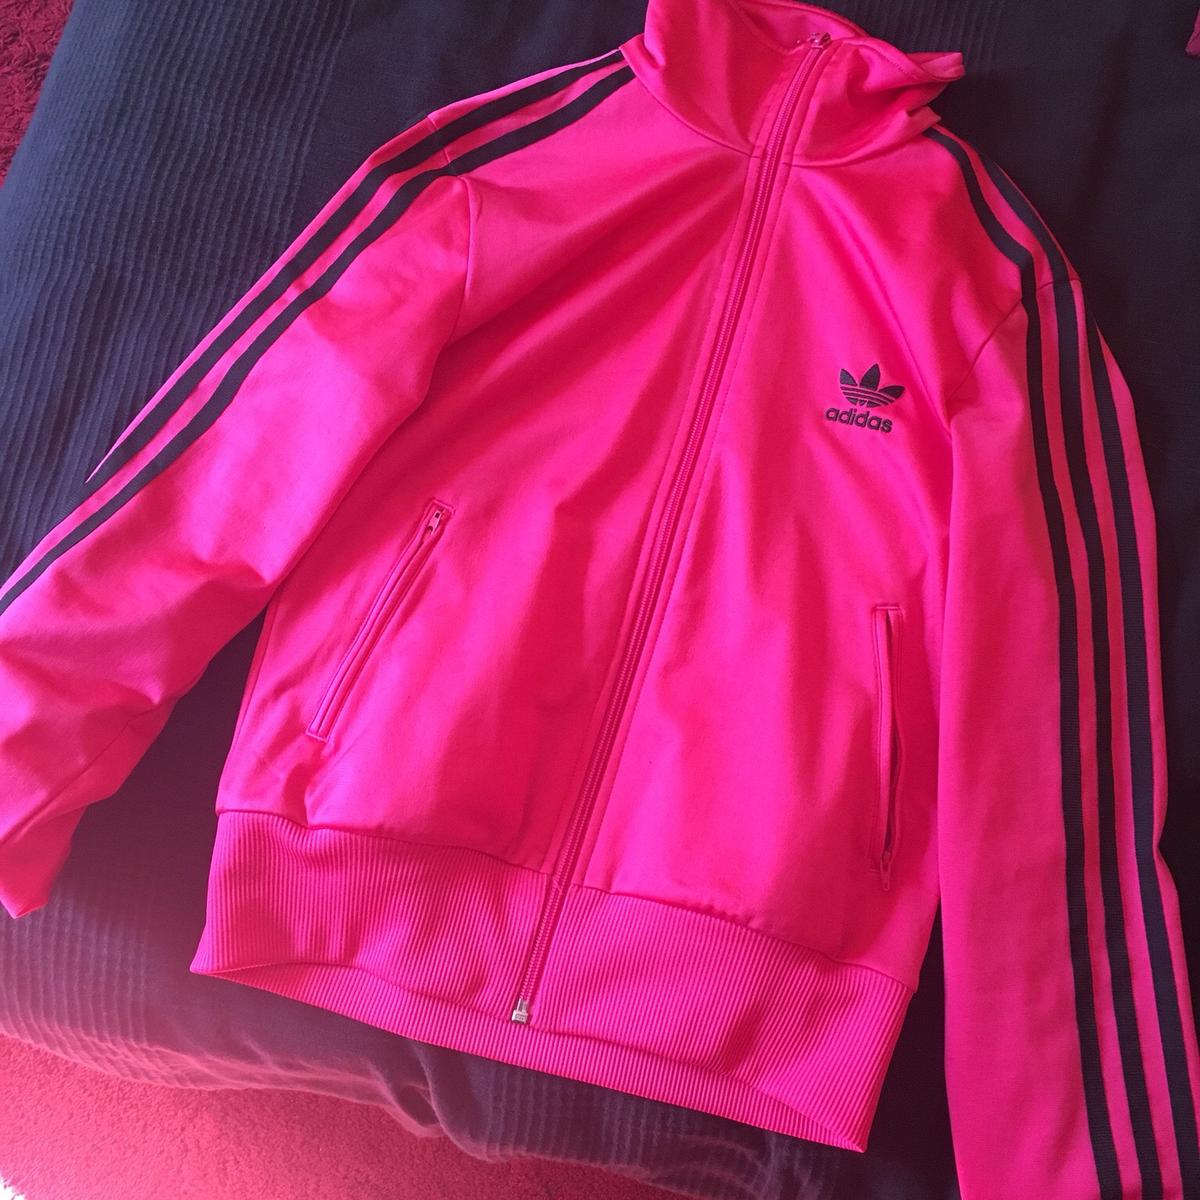 Pinke Adidas Jacke Damen 38 in 44892 Bochum for €25.00 for sale - Shpock